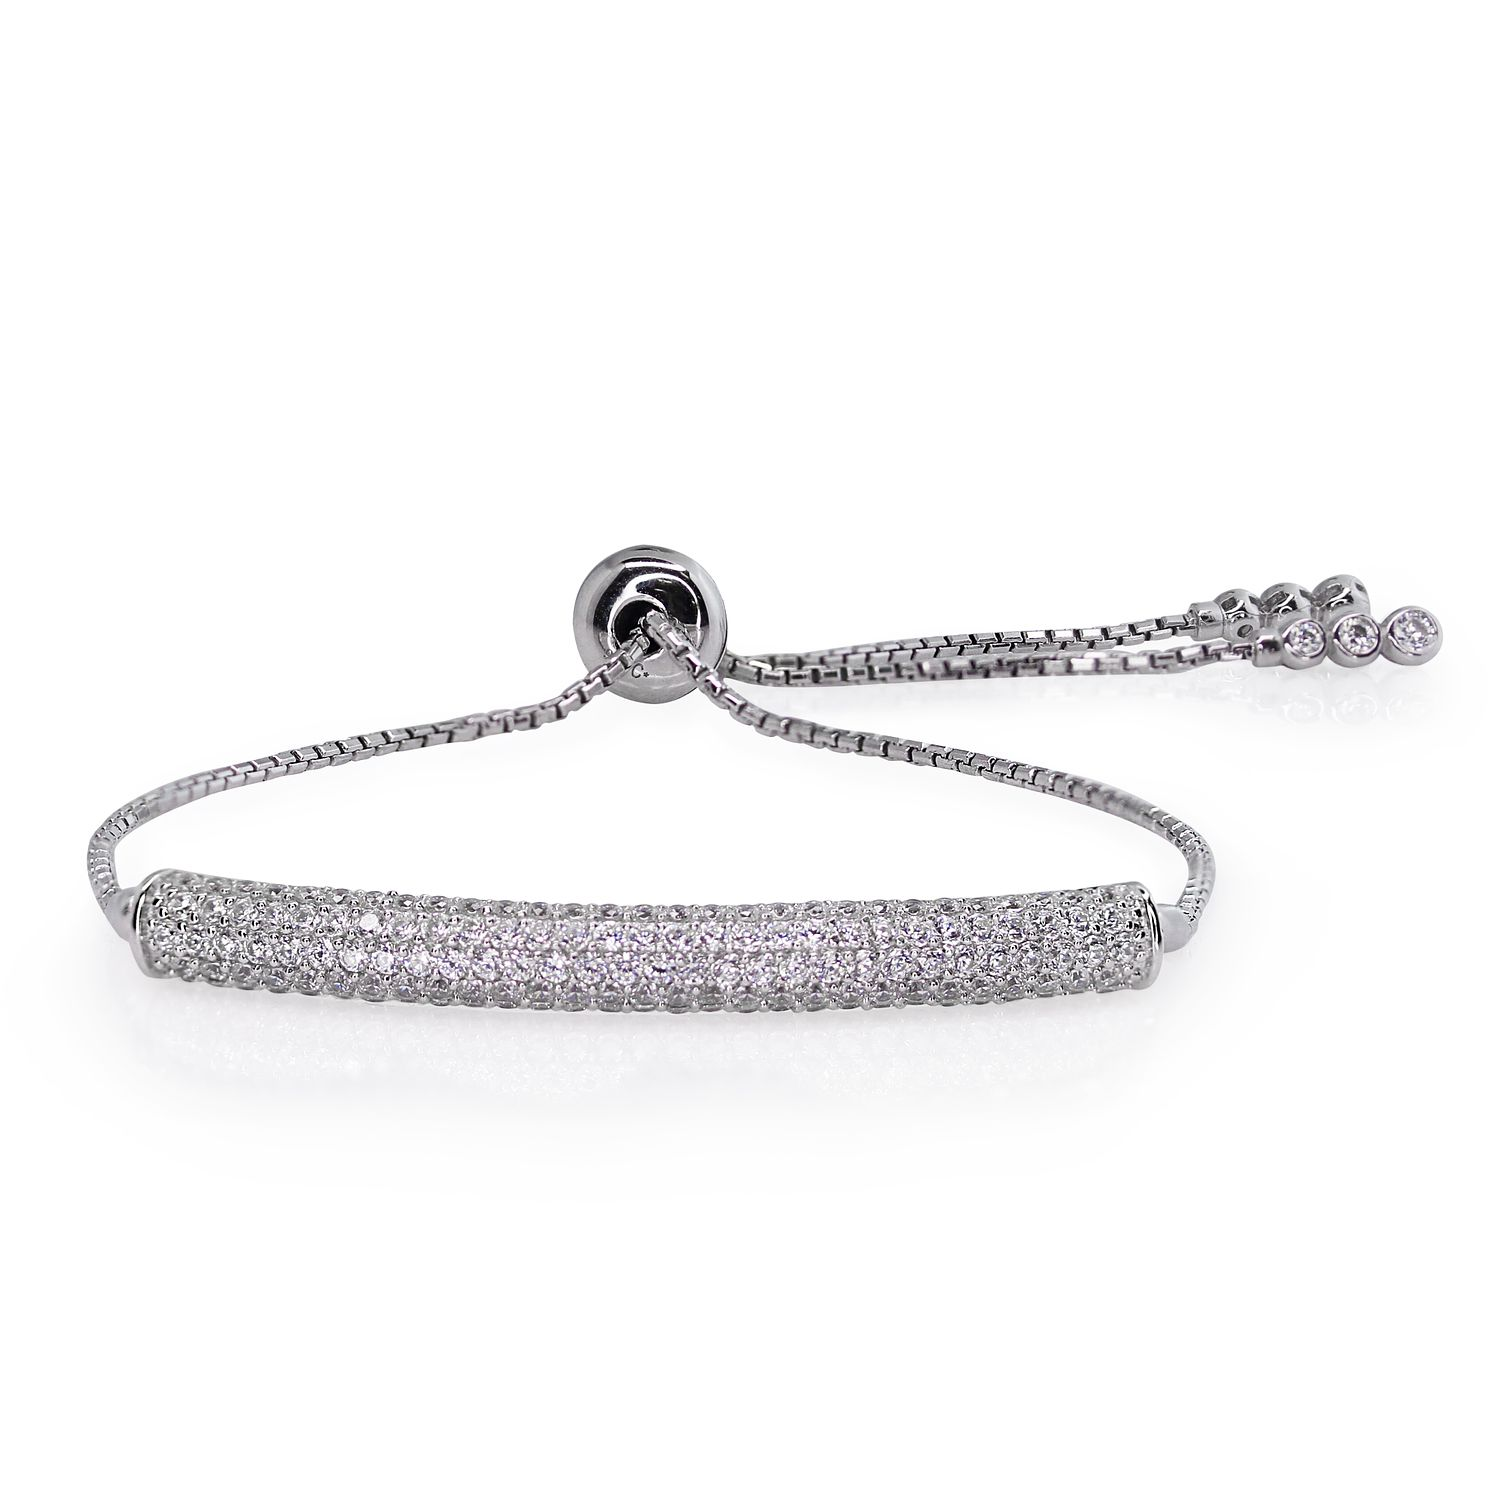 CARAT* LONDON Millennium Brilliants Sterling Silver Bracelet - Product number 3095061